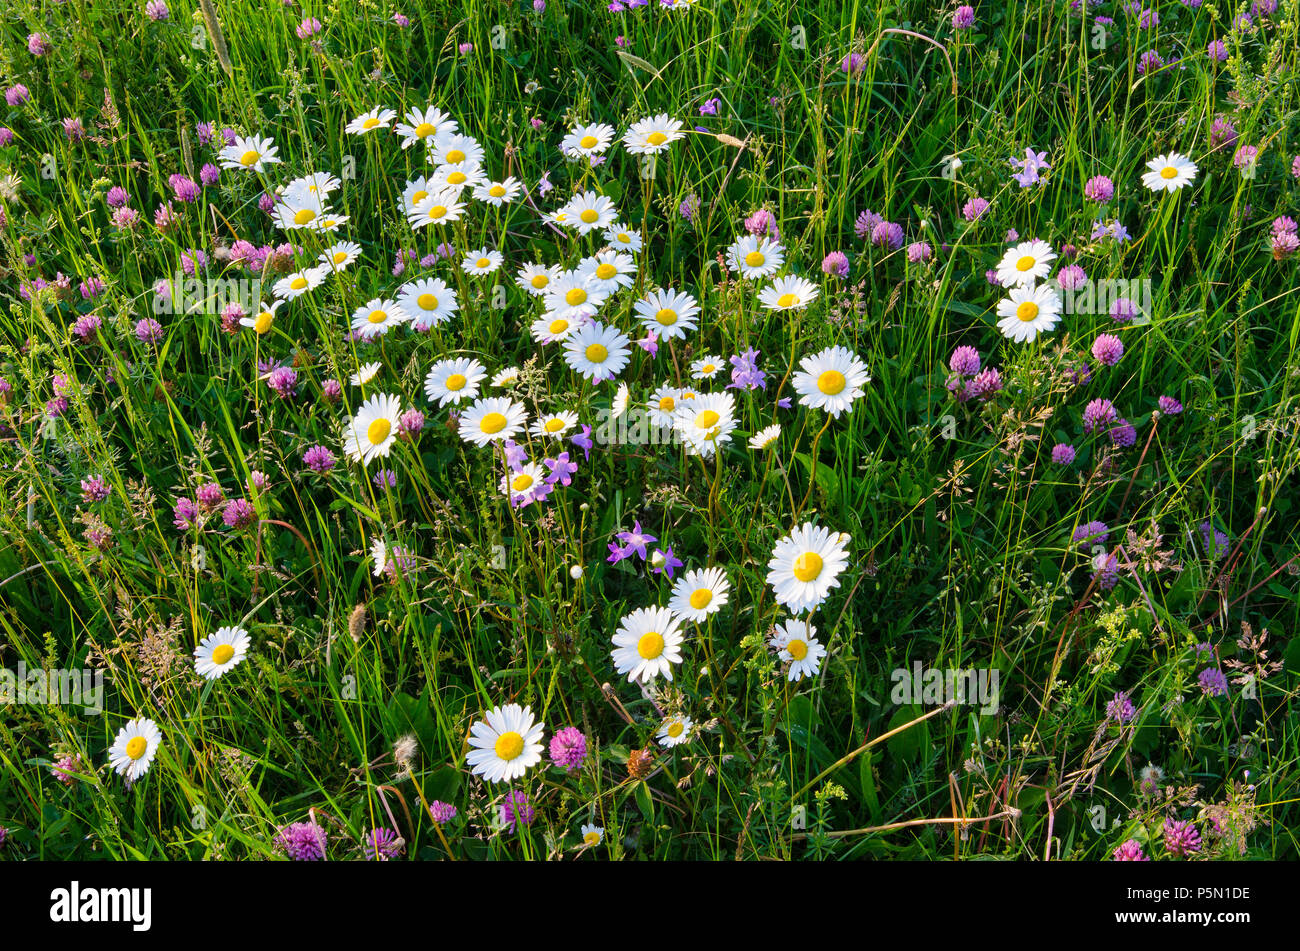 Daisies Blooming In The Wild Flower Field Stock Photo 210059850 Alamy